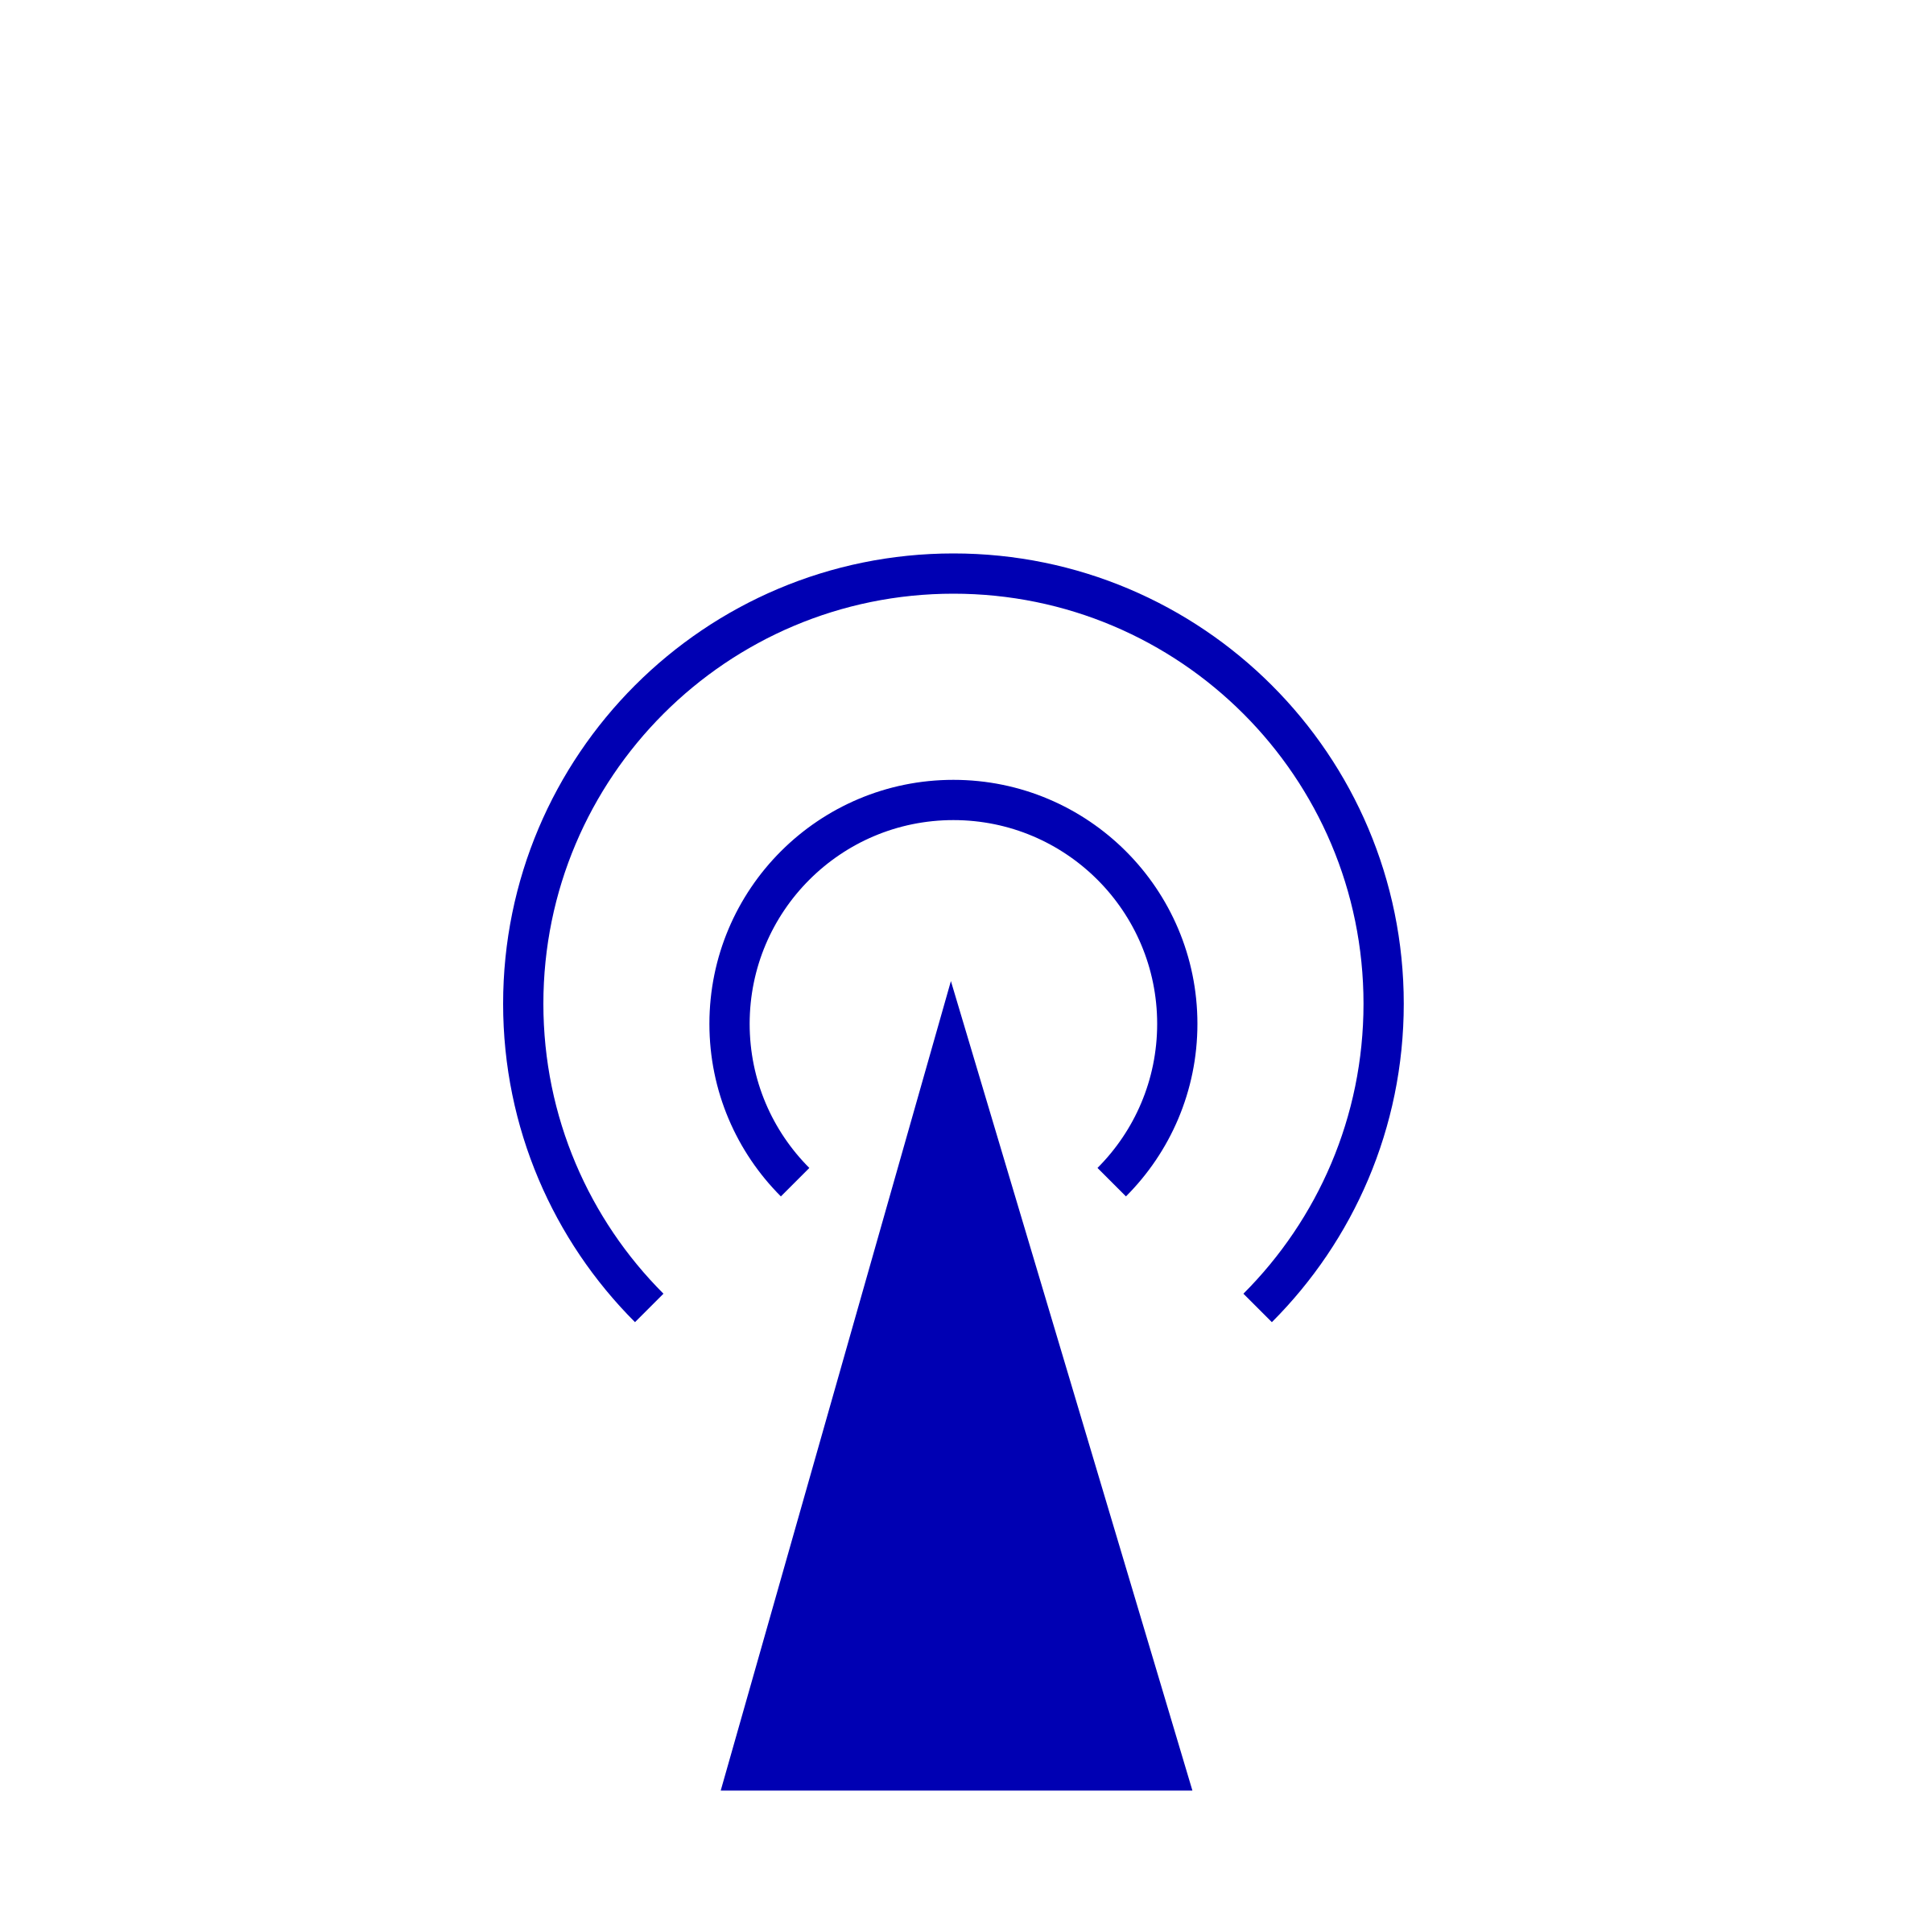 Wireless Logo by graingert